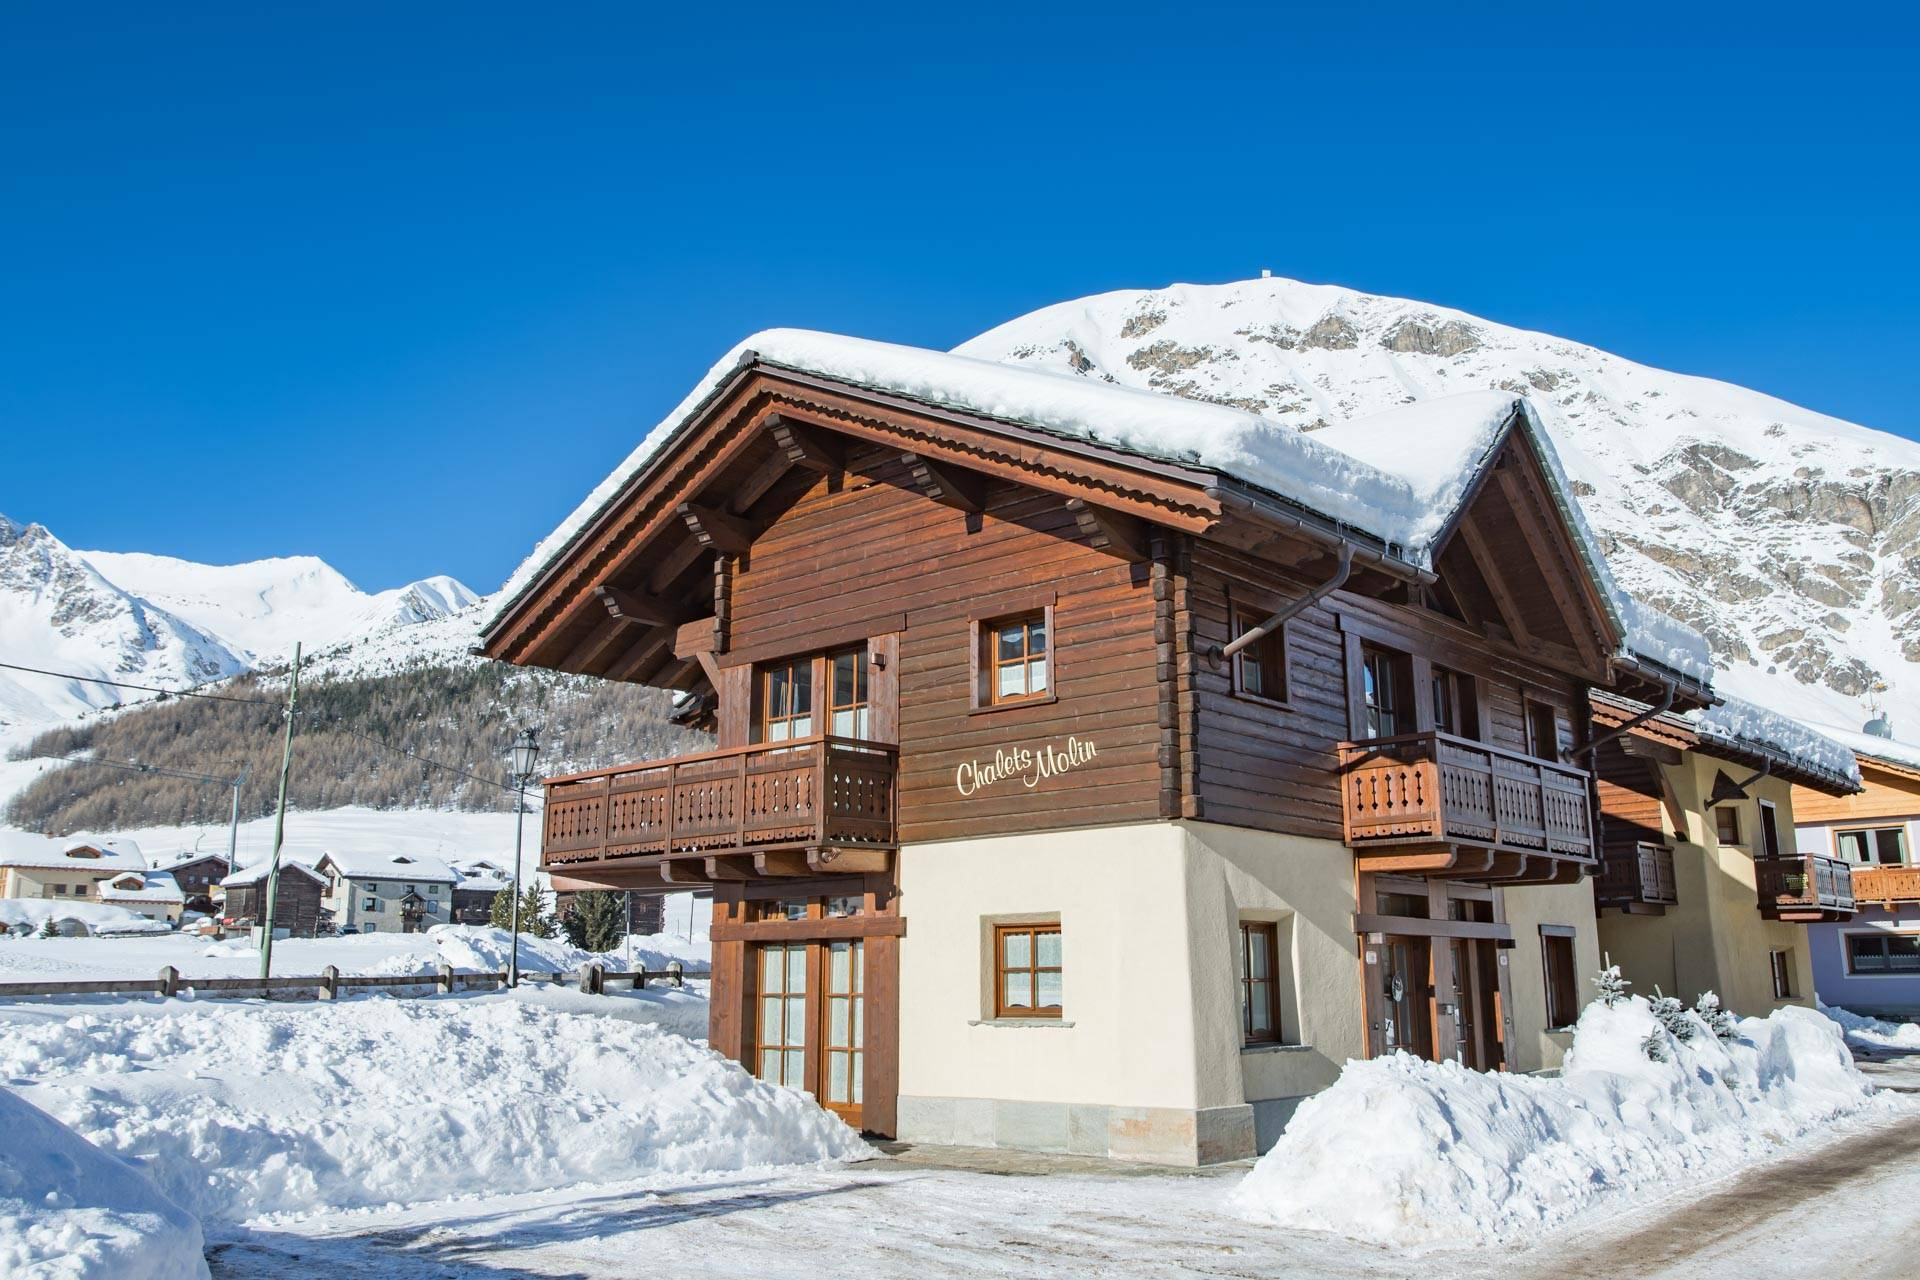 A relaxing holiday in Livigno, Valtellina